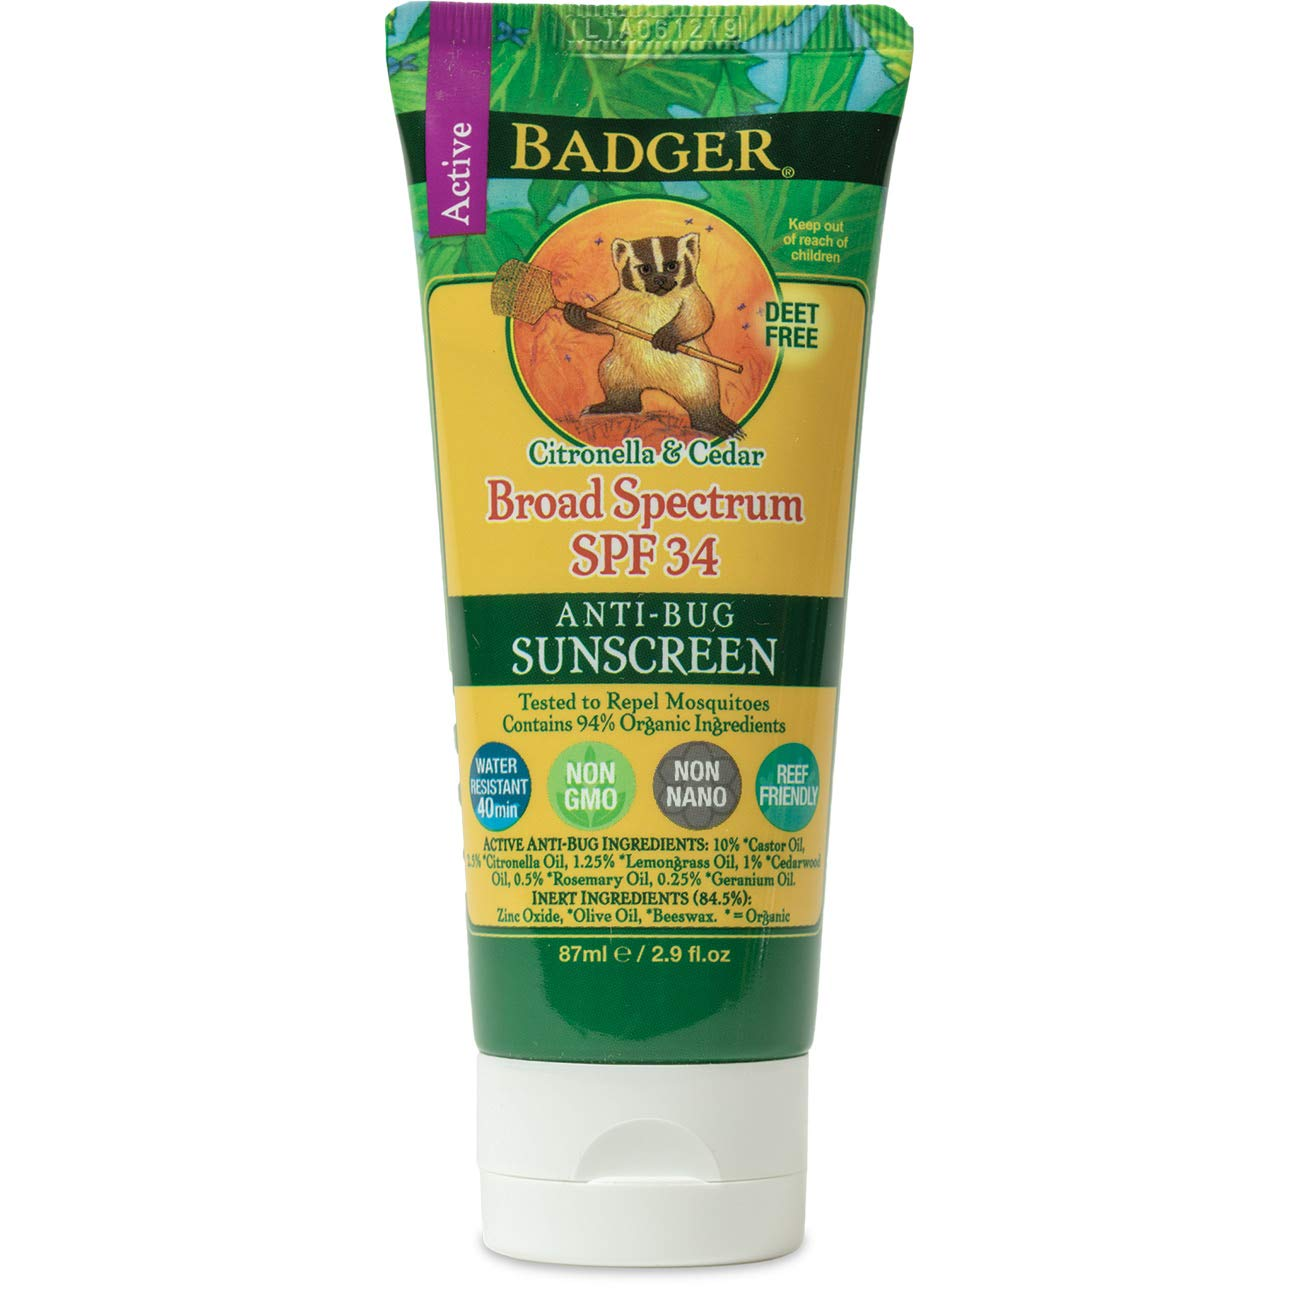 Badger - SPF 34 Anti-Bug Sunscreen Cream - DEET-Free Sunscreen Bug Repellent - Broad Spectrum Water Resistant Reef Safe Sunscreen, Natural Mineral Sunscreen with Organic Ingredients 2.9 fl oz